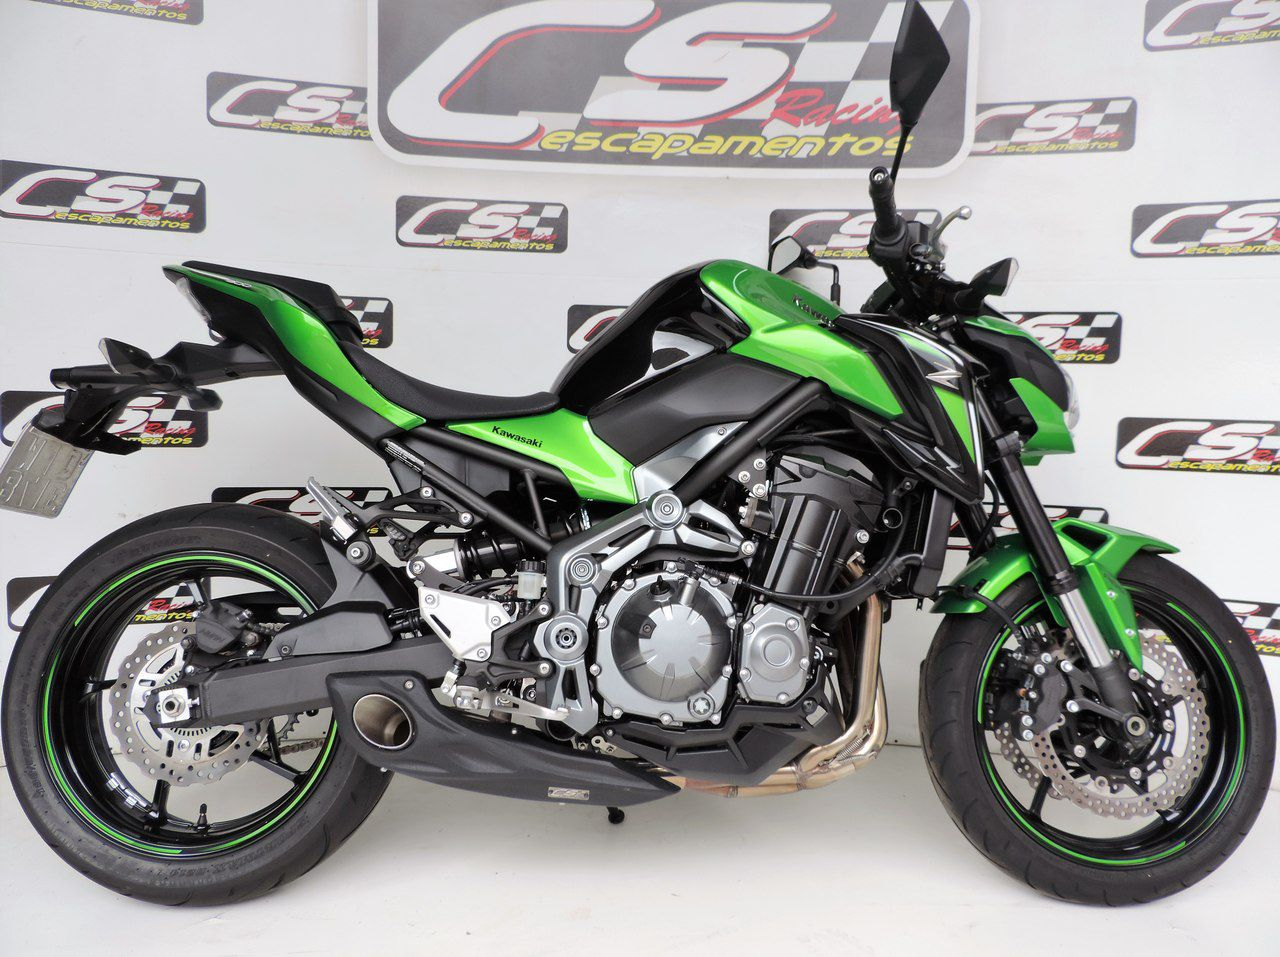 Escapamento Esportivo Full | CS Racing | Z900